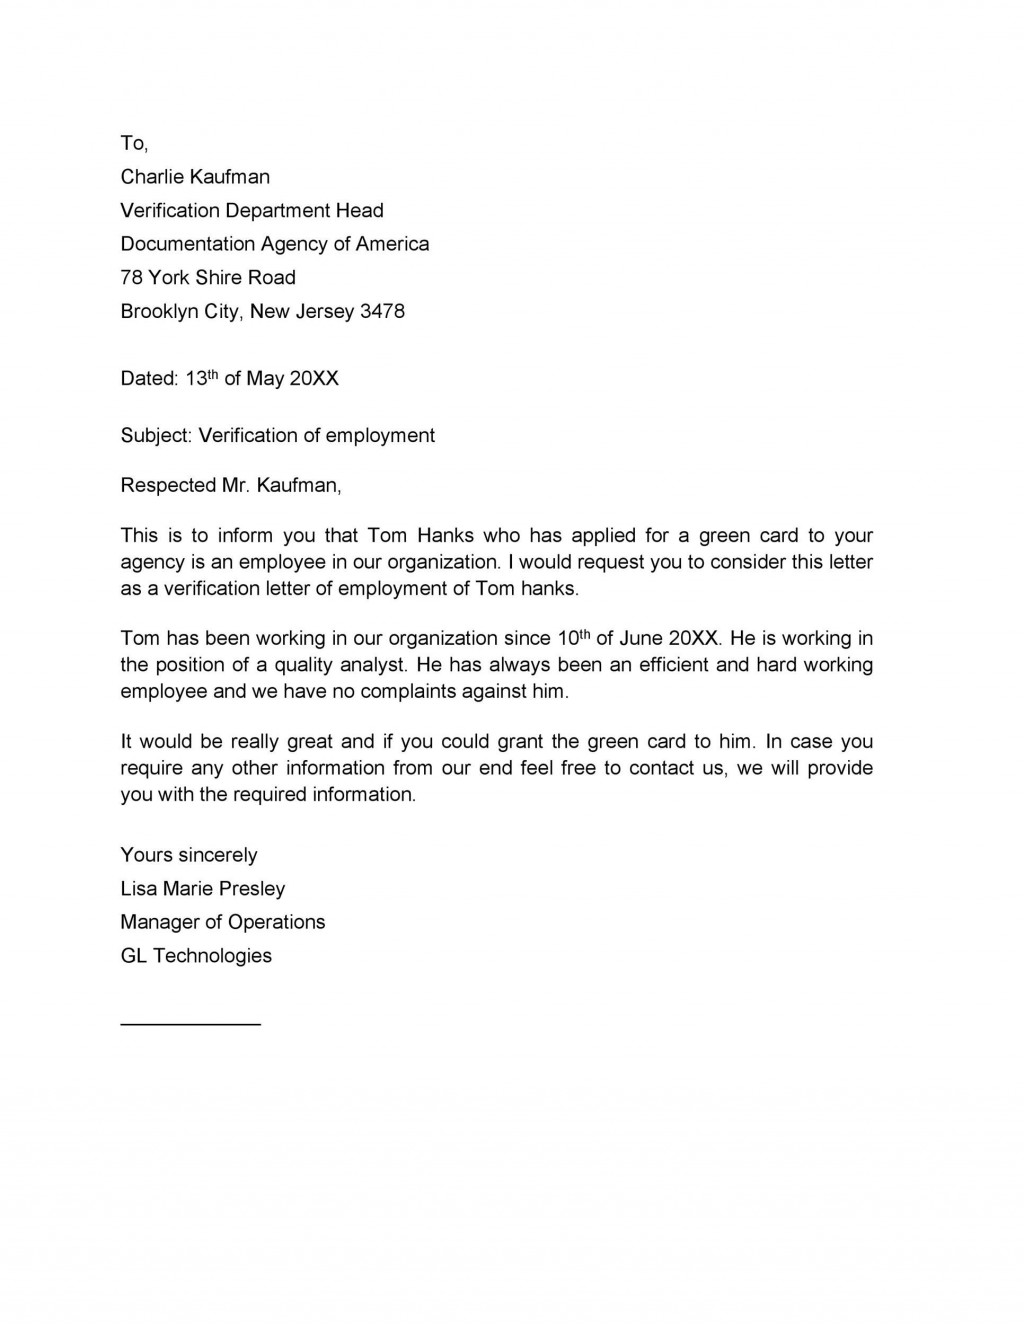 009 Beautiful Employment Verification Letter Template Word Idea  South AfricaLarge